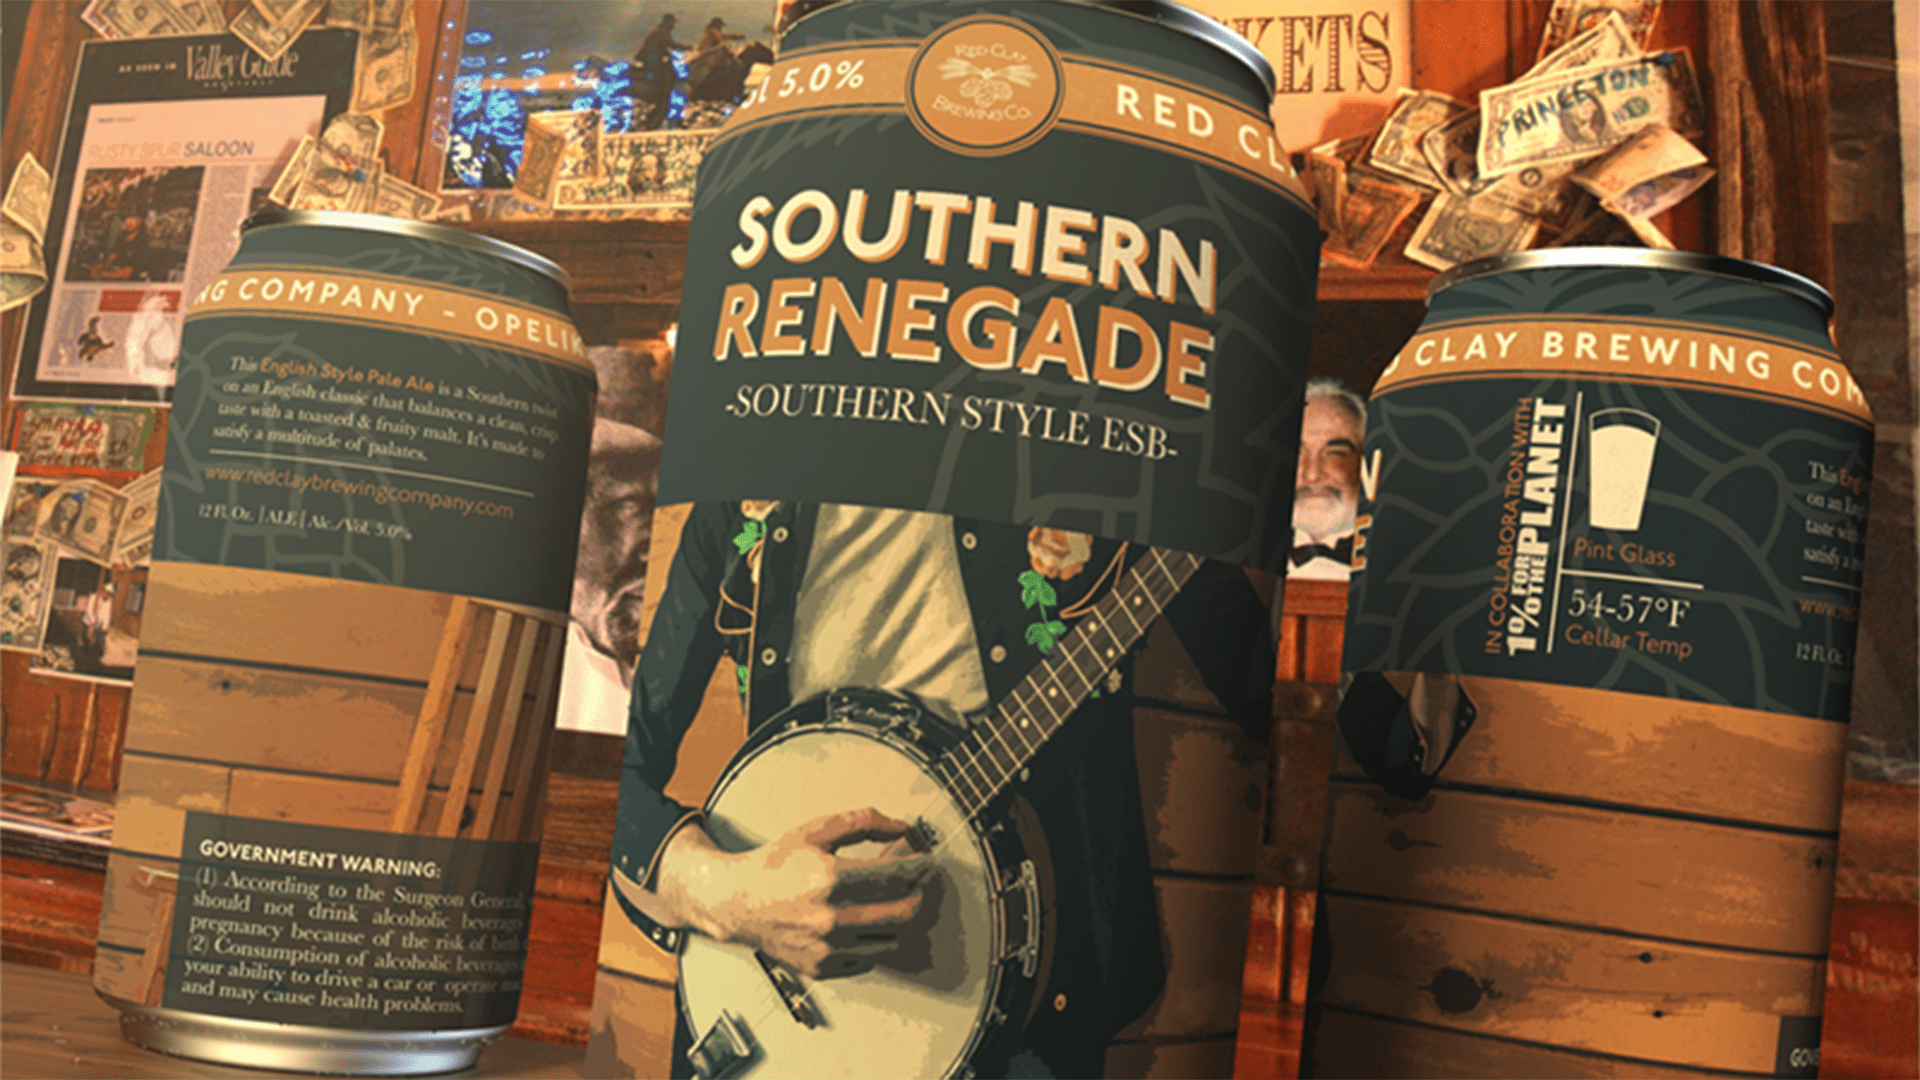 Red Clay Brewing Southern Renegade can design